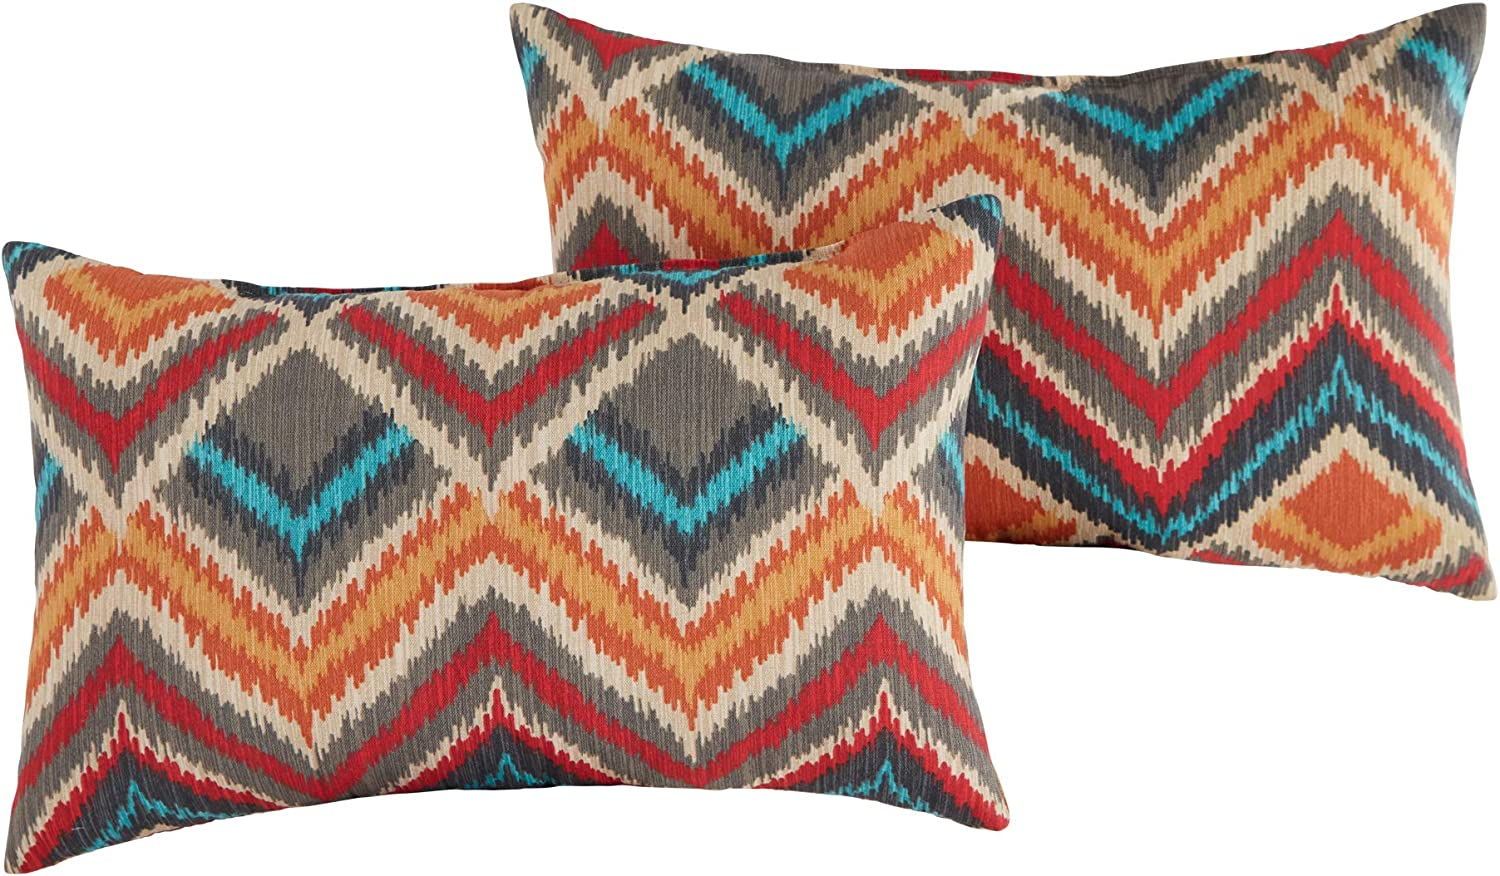 South Pine Porch Outdoor Surreal Chevron 19x12-inch Rectangle Accent Pillow, Set of 2